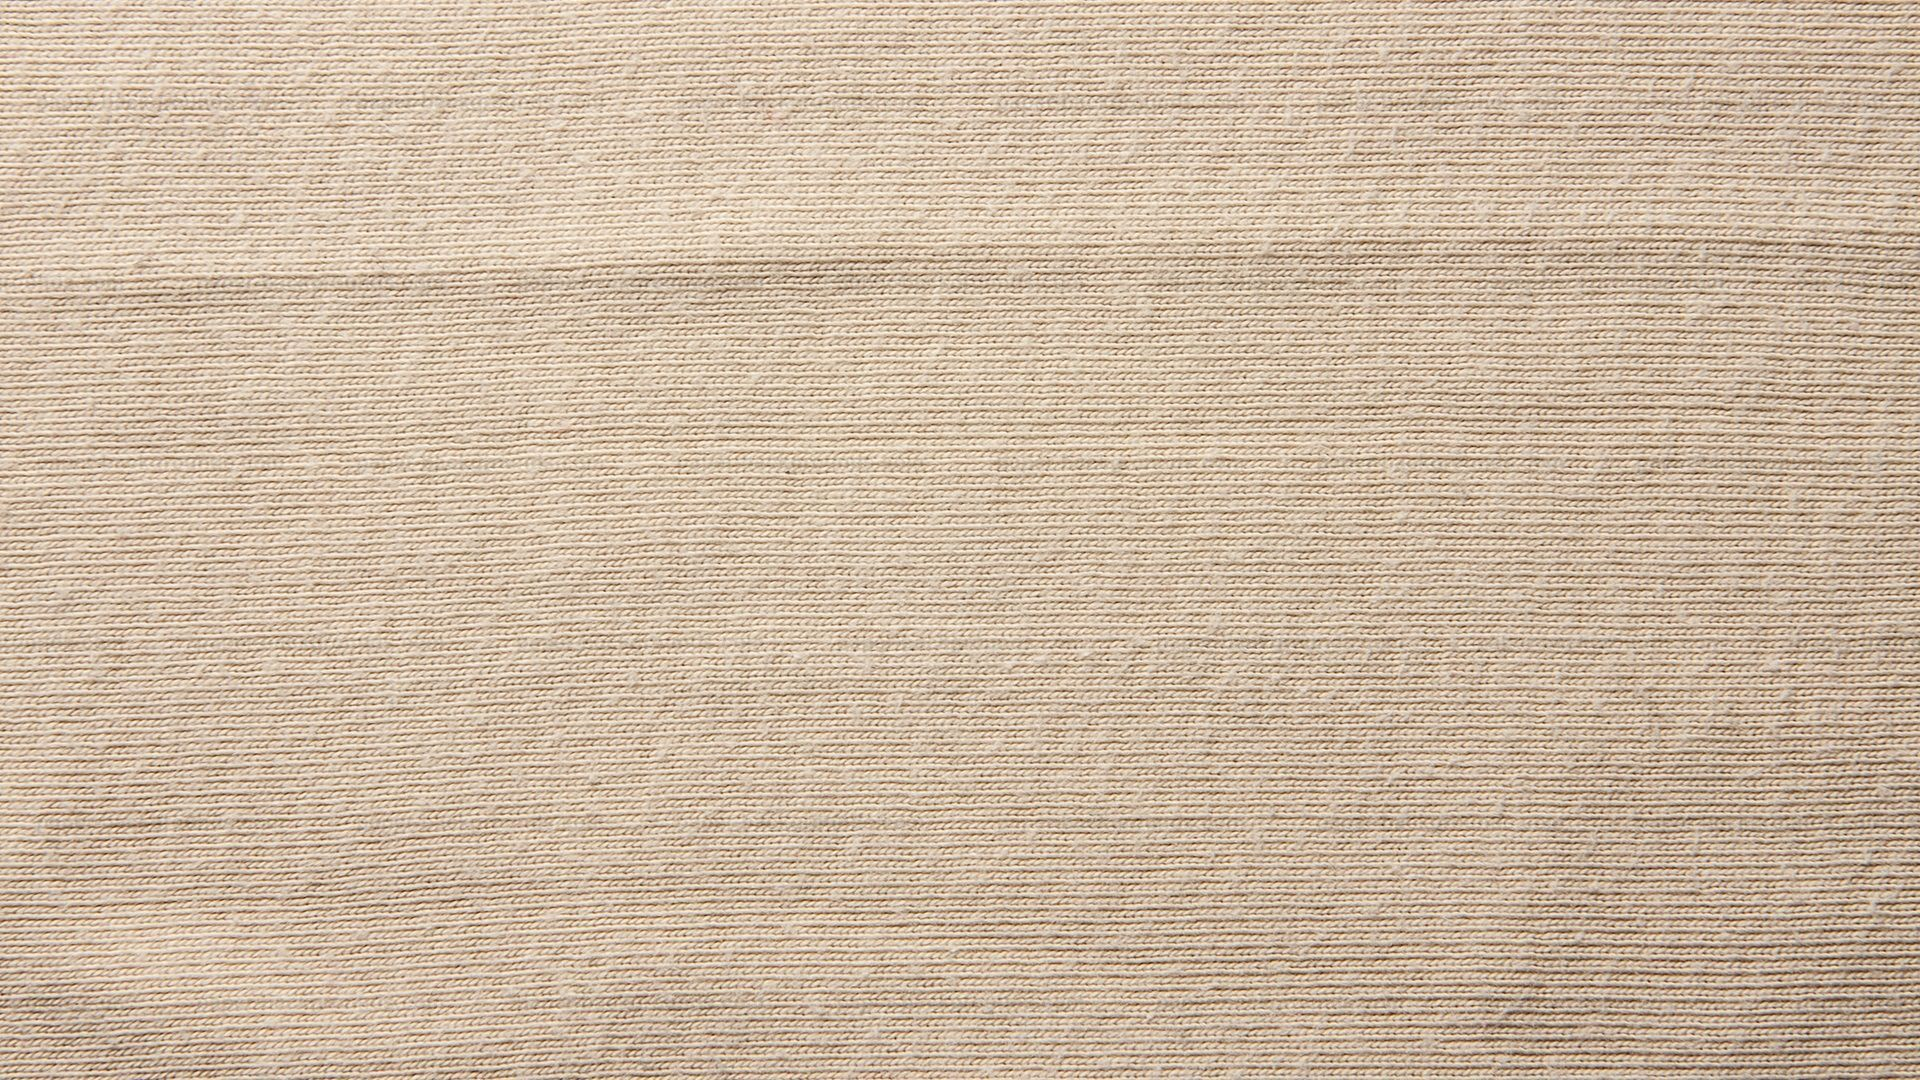 cloth-background-texture